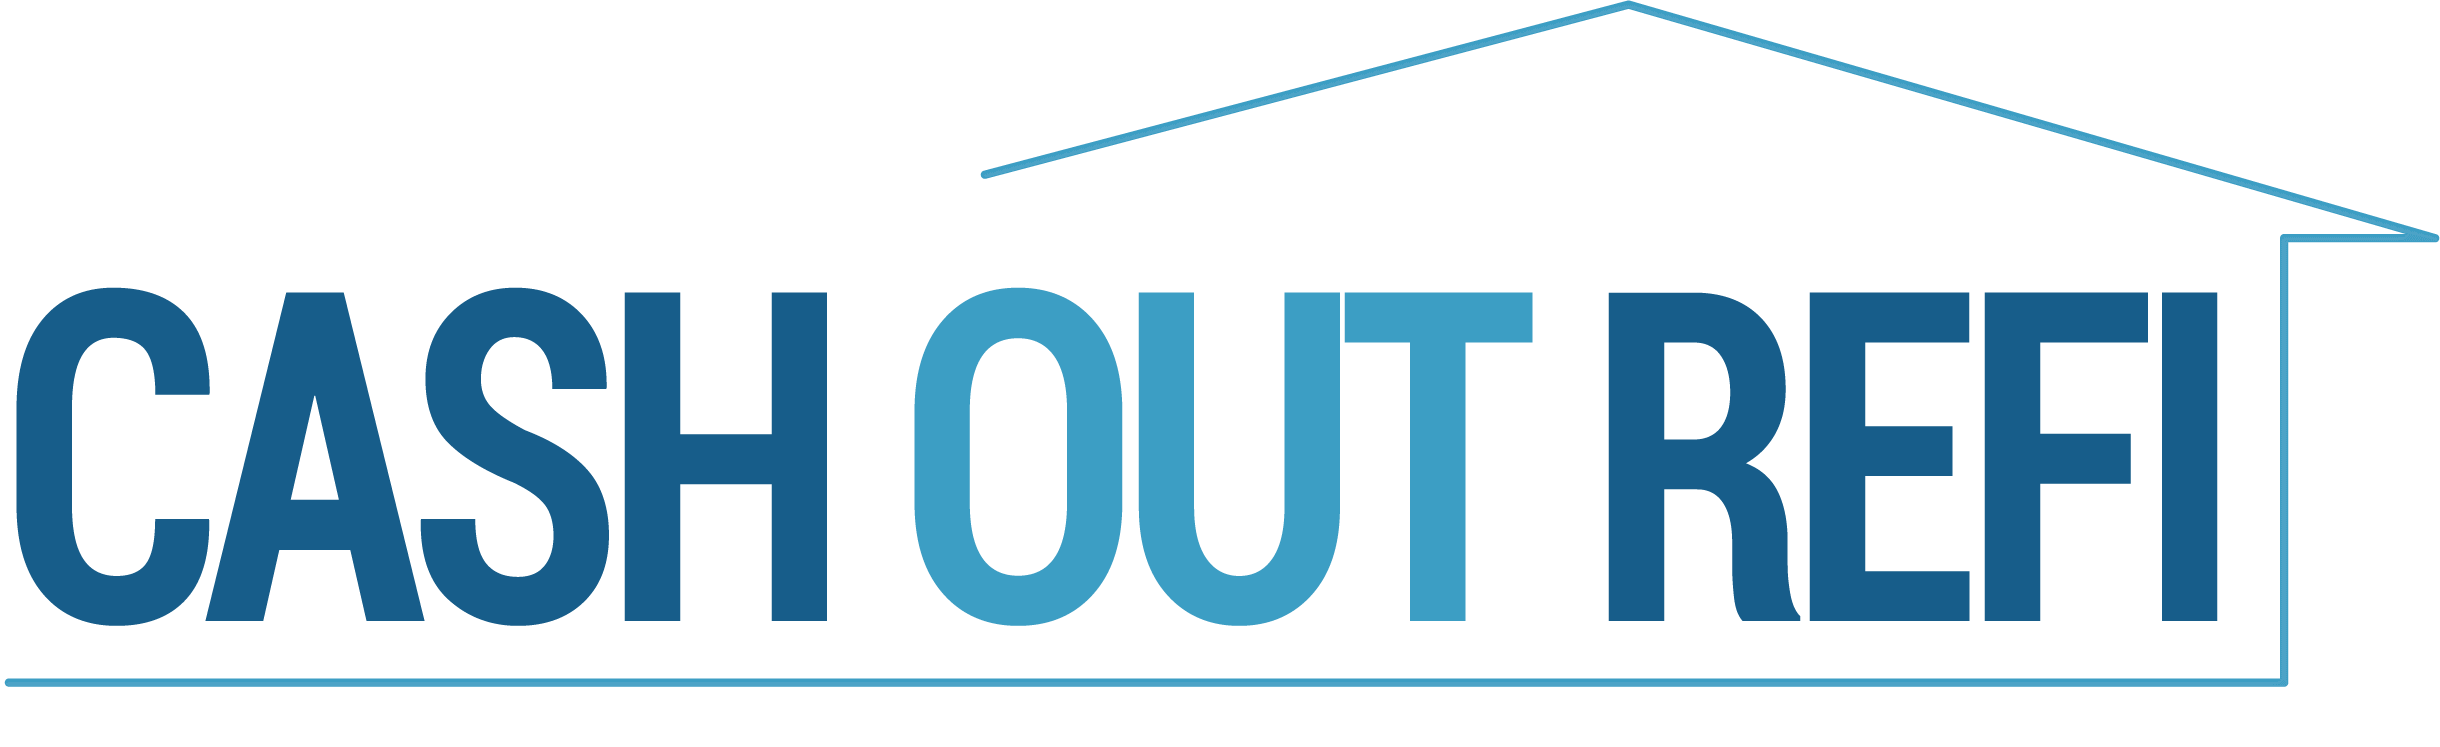 Cash out refi logo